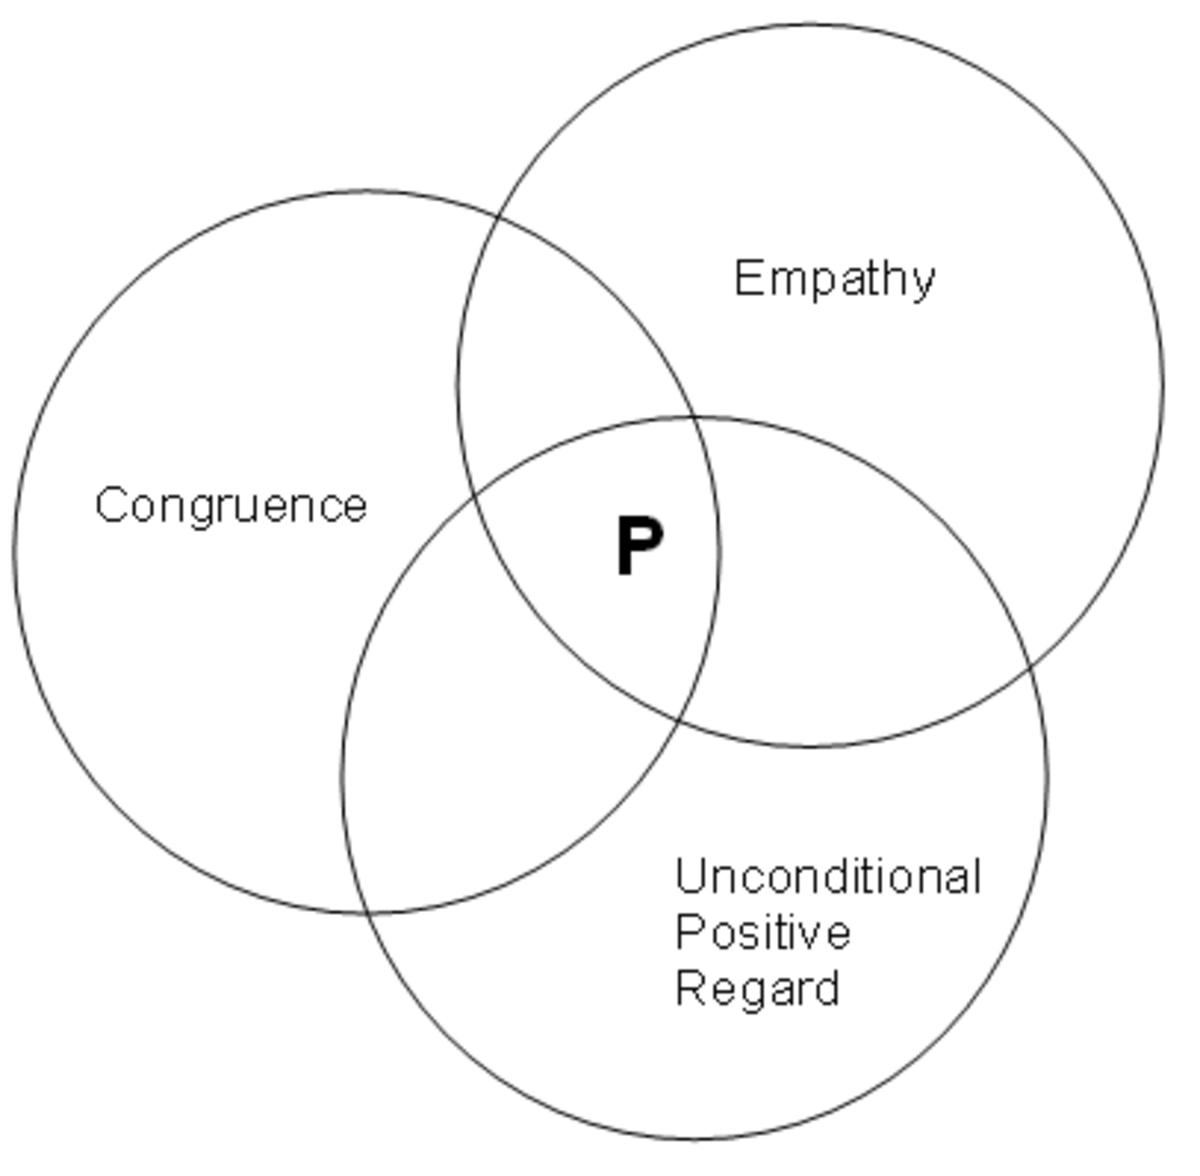 Defining Empathy Skills in Practice: Carl Rogers and Unconditional Regard